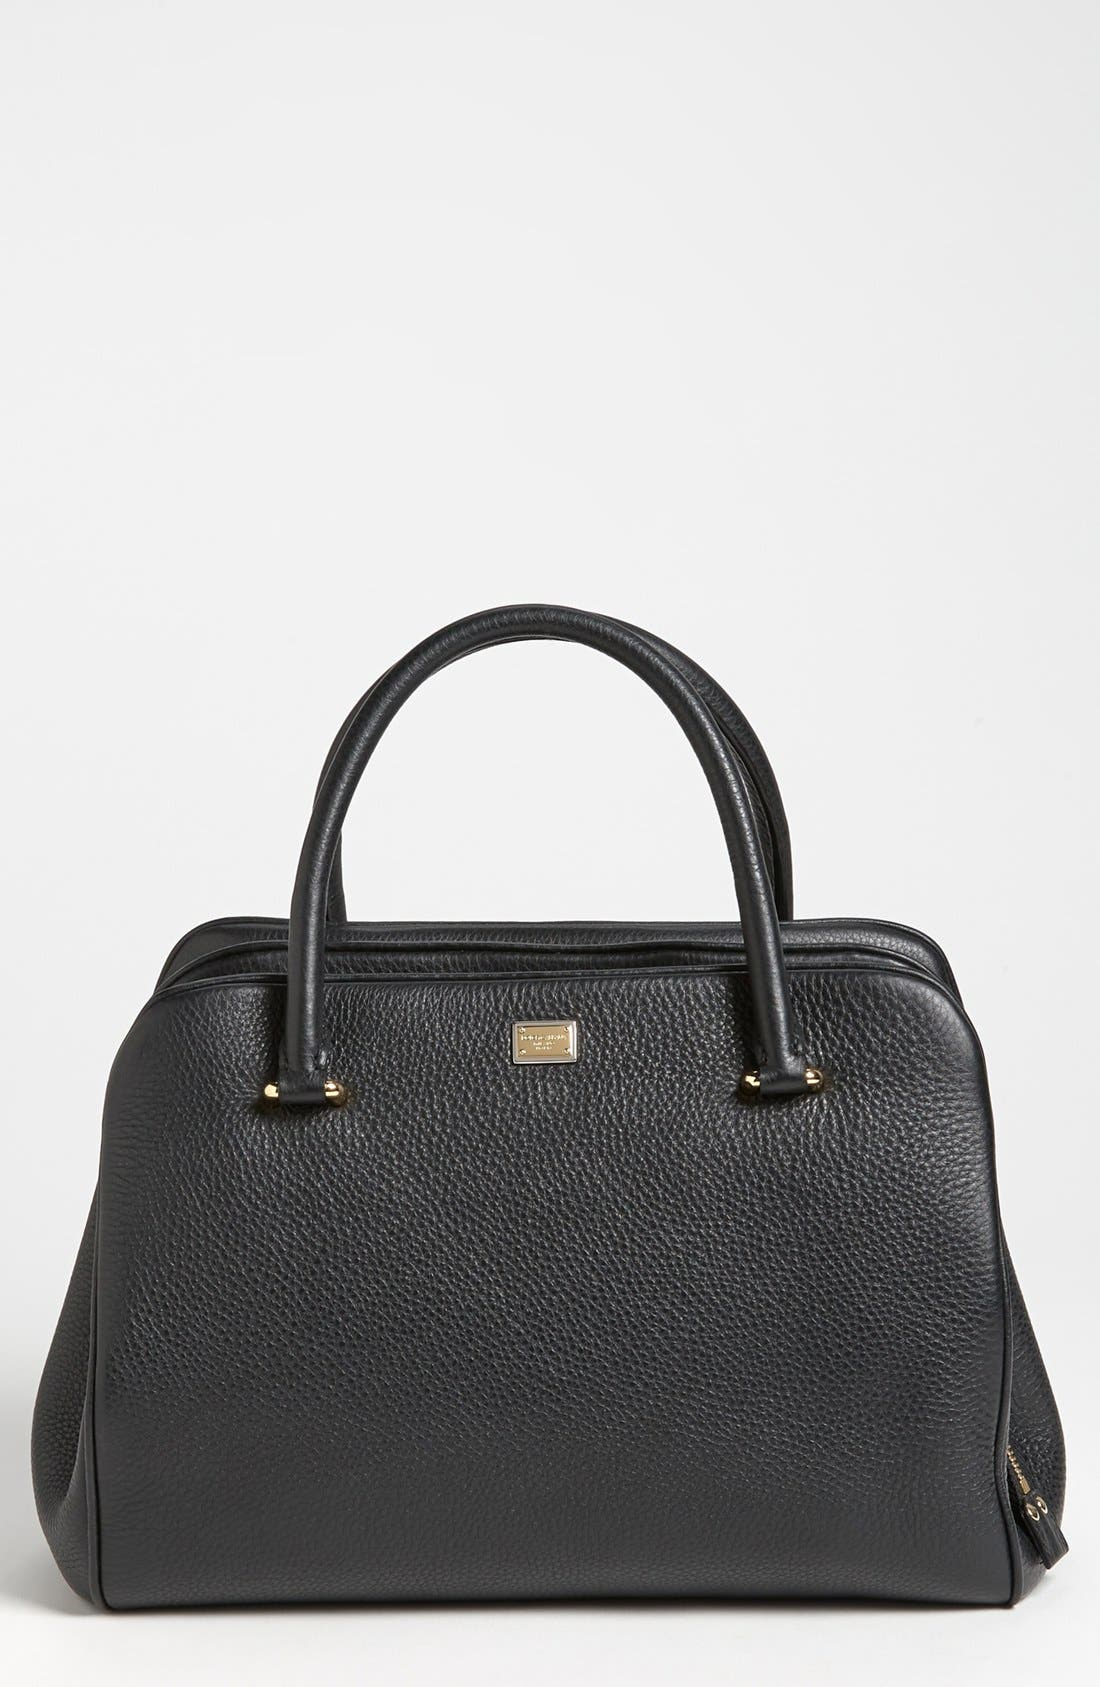 Main Image - Dolce&Gabbana 'Miss Lily' Leather Handbag